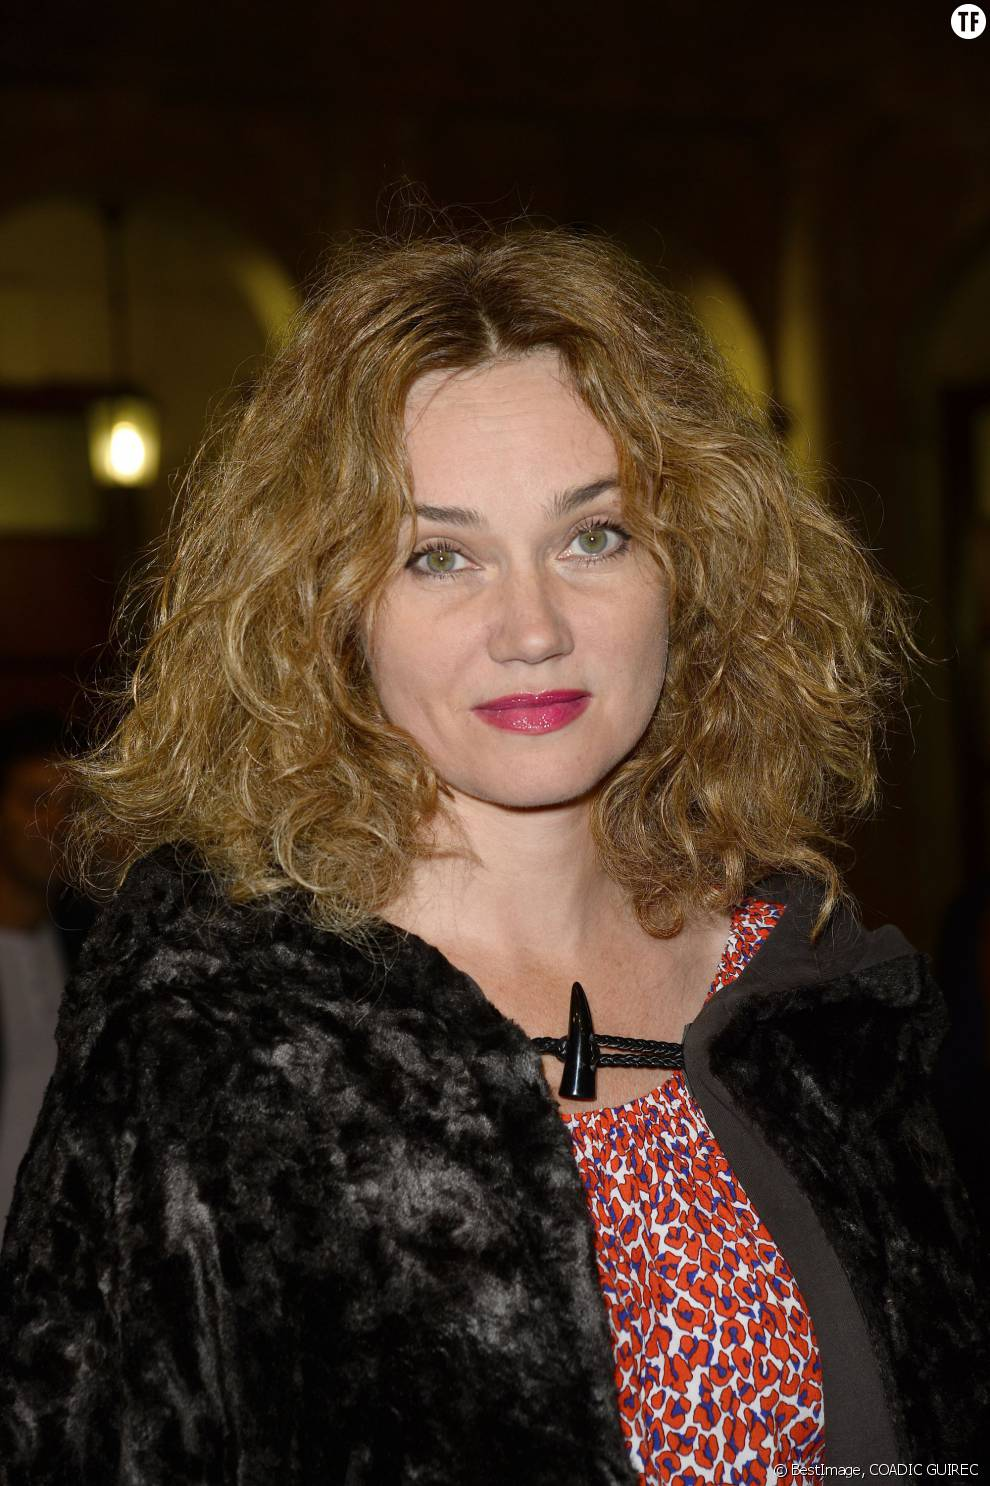 L'actrice Marine Delterme